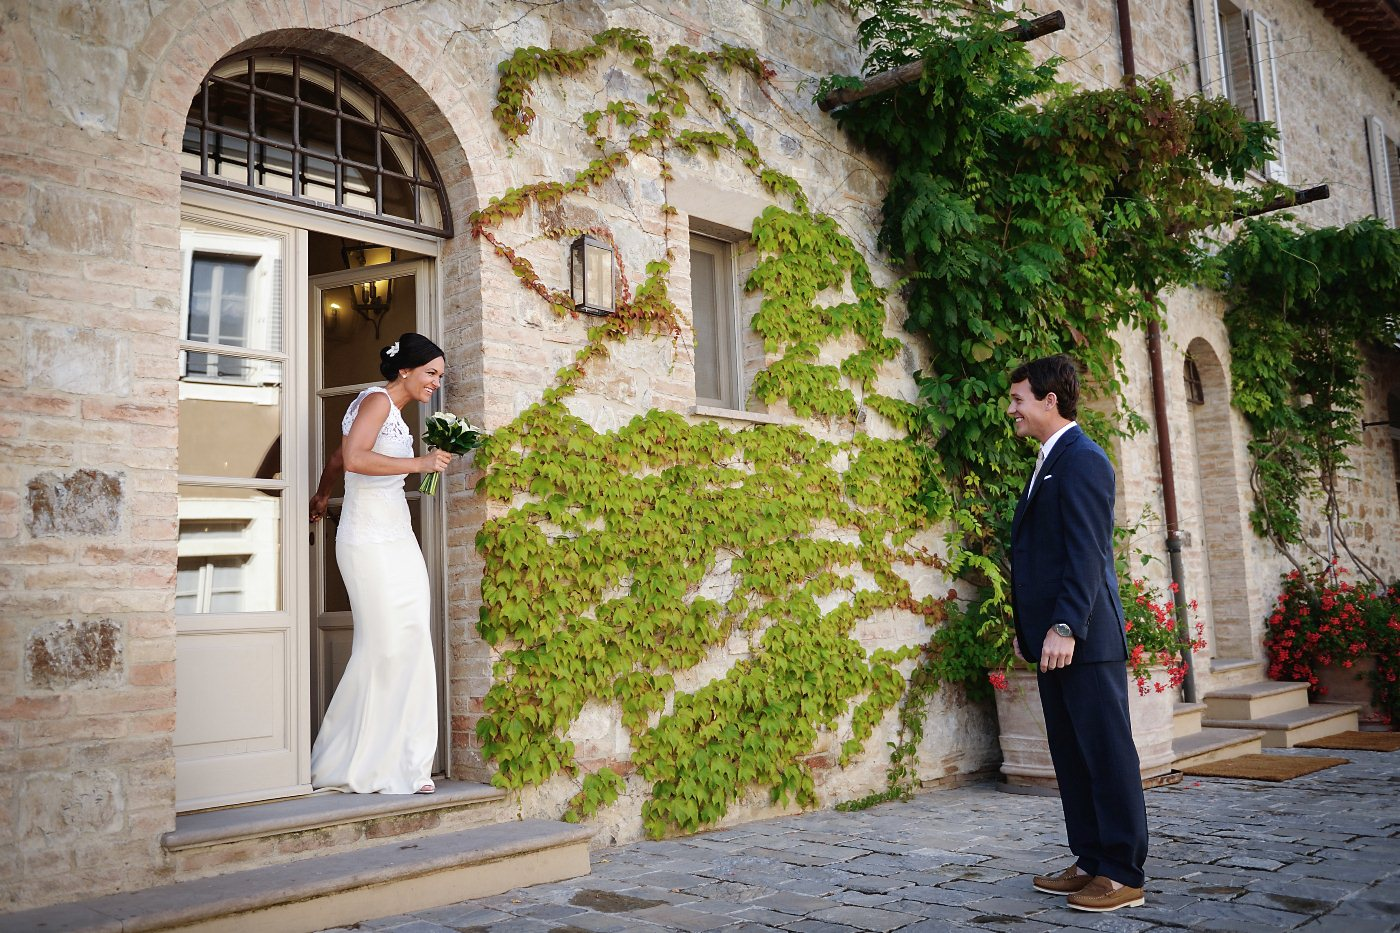 wedding photo castiglion del bosco montalcino_07.jpg